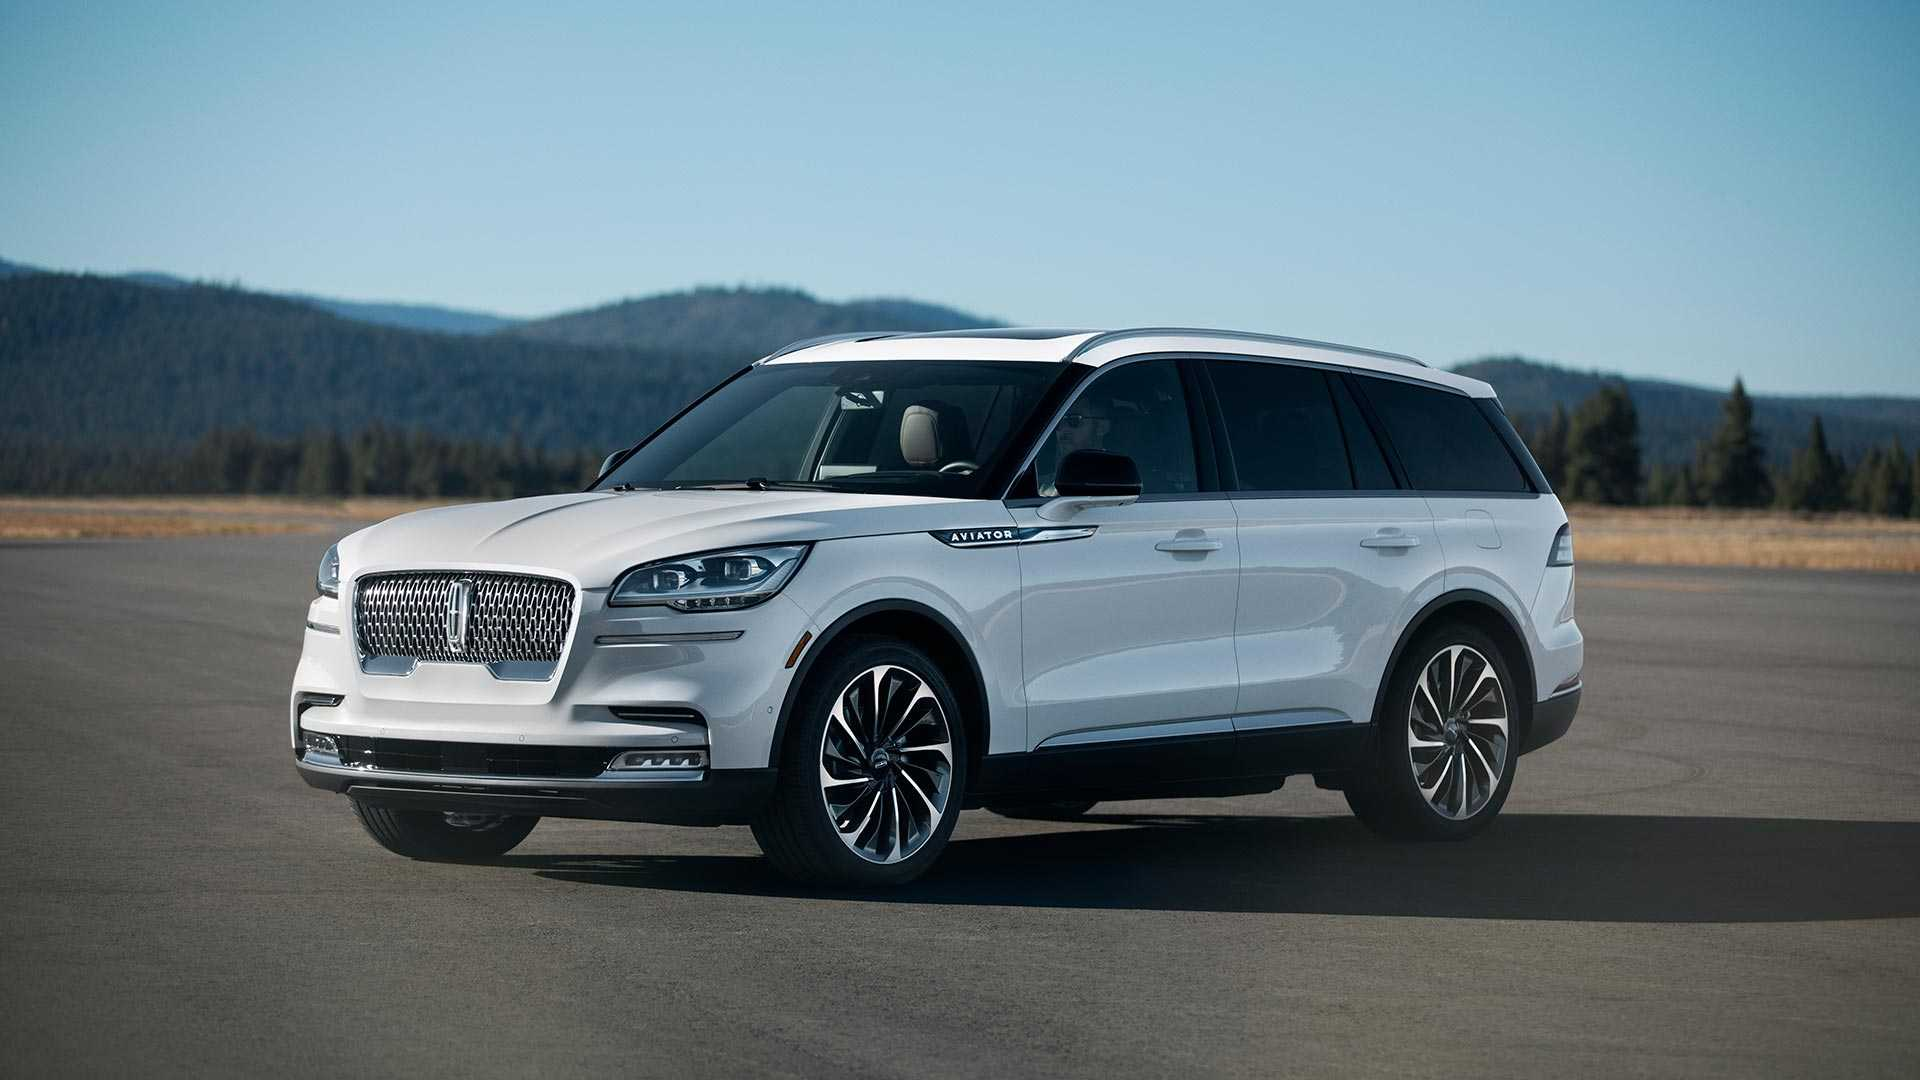 2020-lincoln-aviator-lo-dien-17.jpg